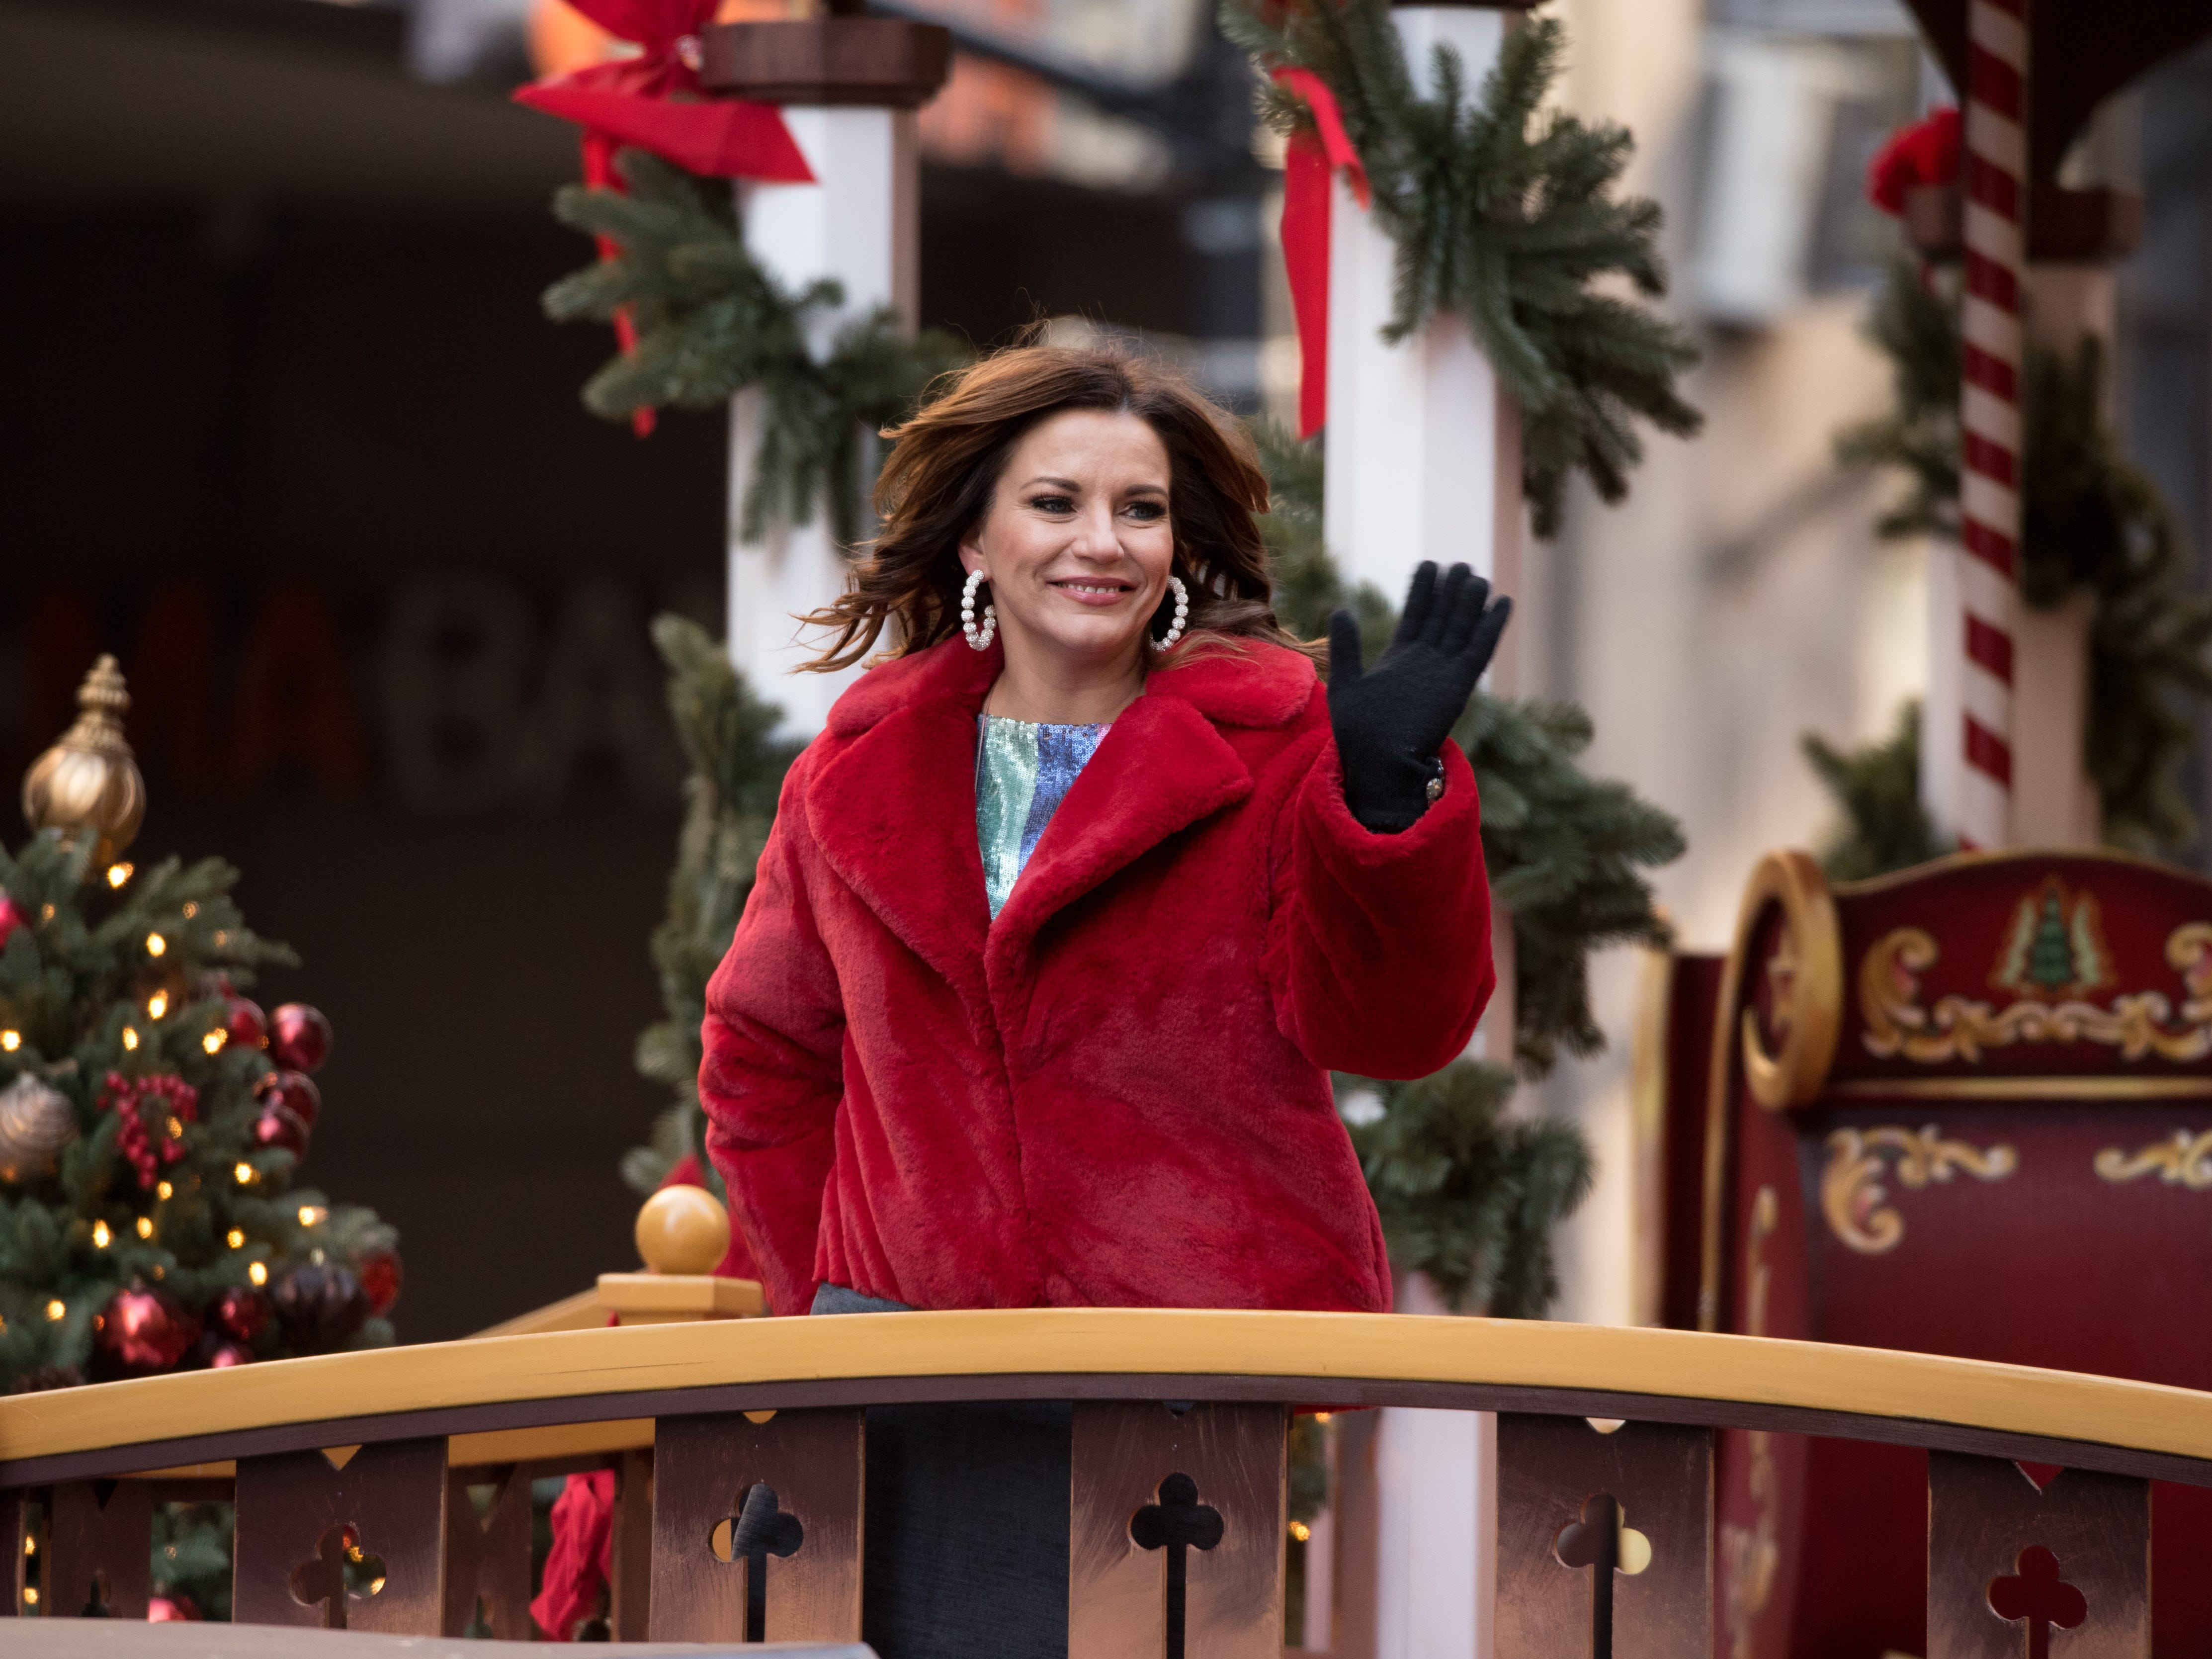 NEW YORK, NY - NOVEMBER 22: Martina McBride attends the 2018 Macy's Thanksgiving Day Parade on November 22, 2018 in New York City.  (Photo by Noam Galai/FilmMagic) ORG XMIT: 775240086 ORIG FILE ID: 1064338568